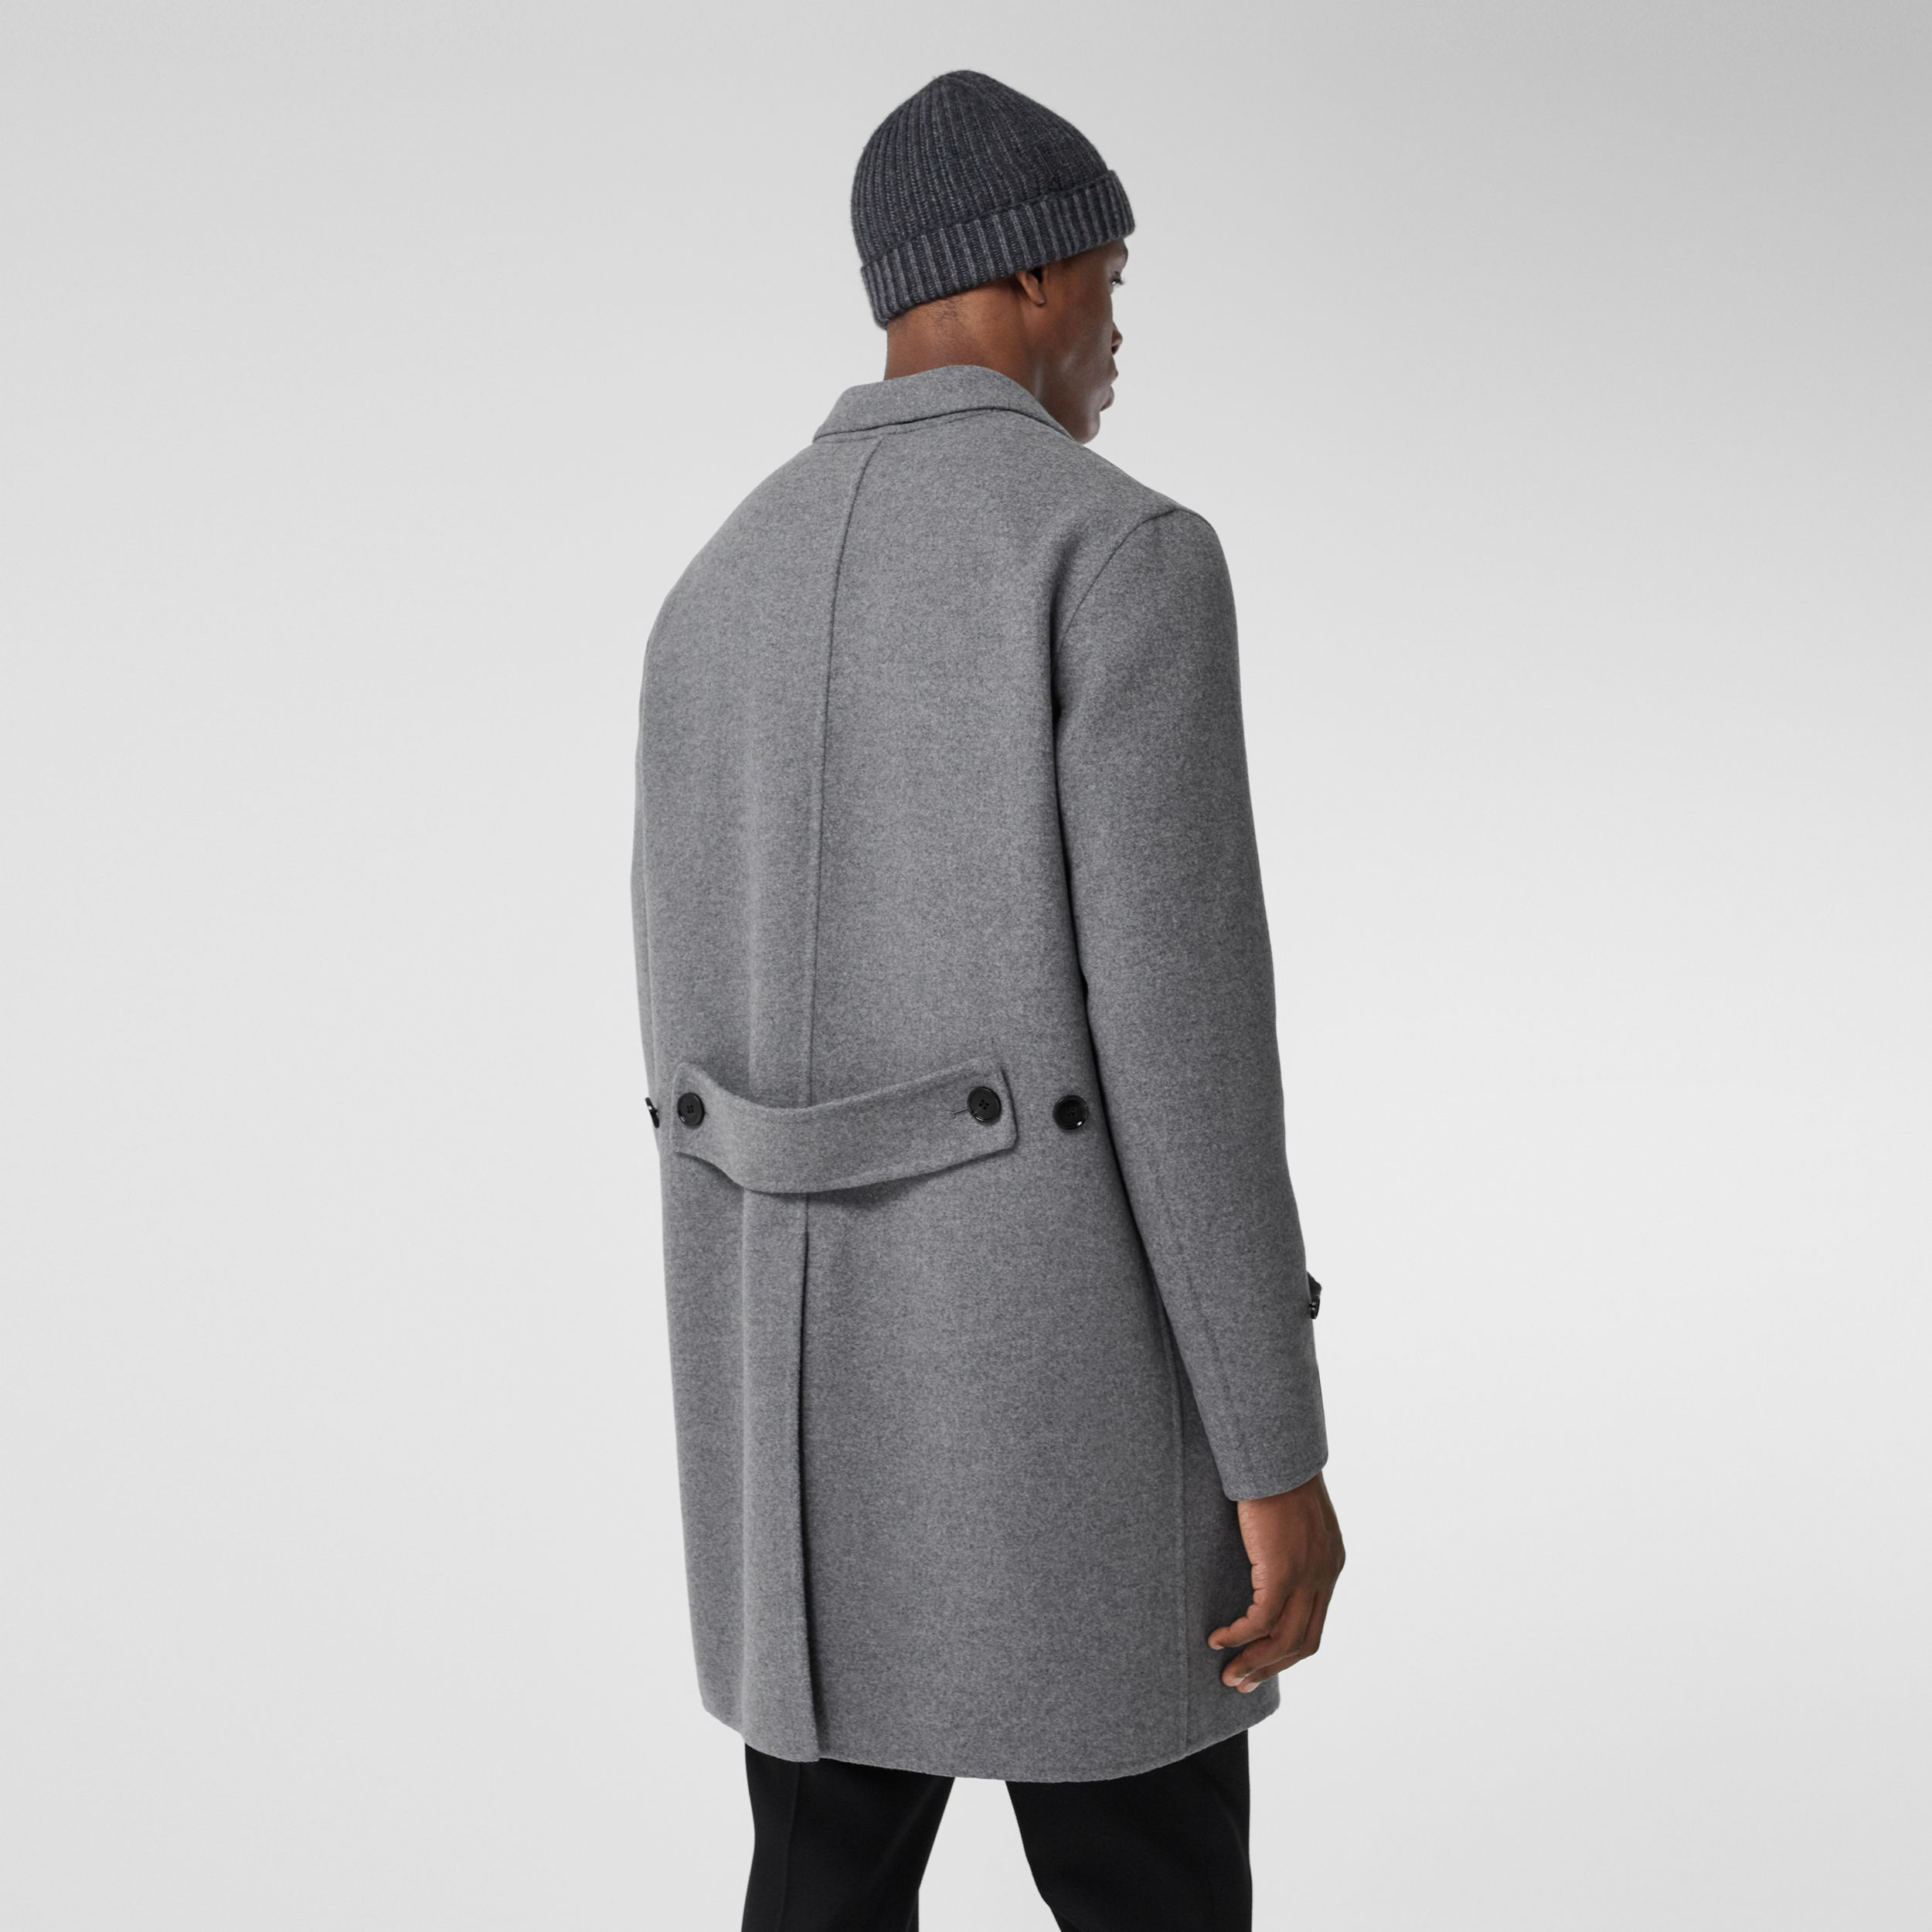 Wool Cashmere Lab Coat in Charcoal - Men | Burberry United States - 3